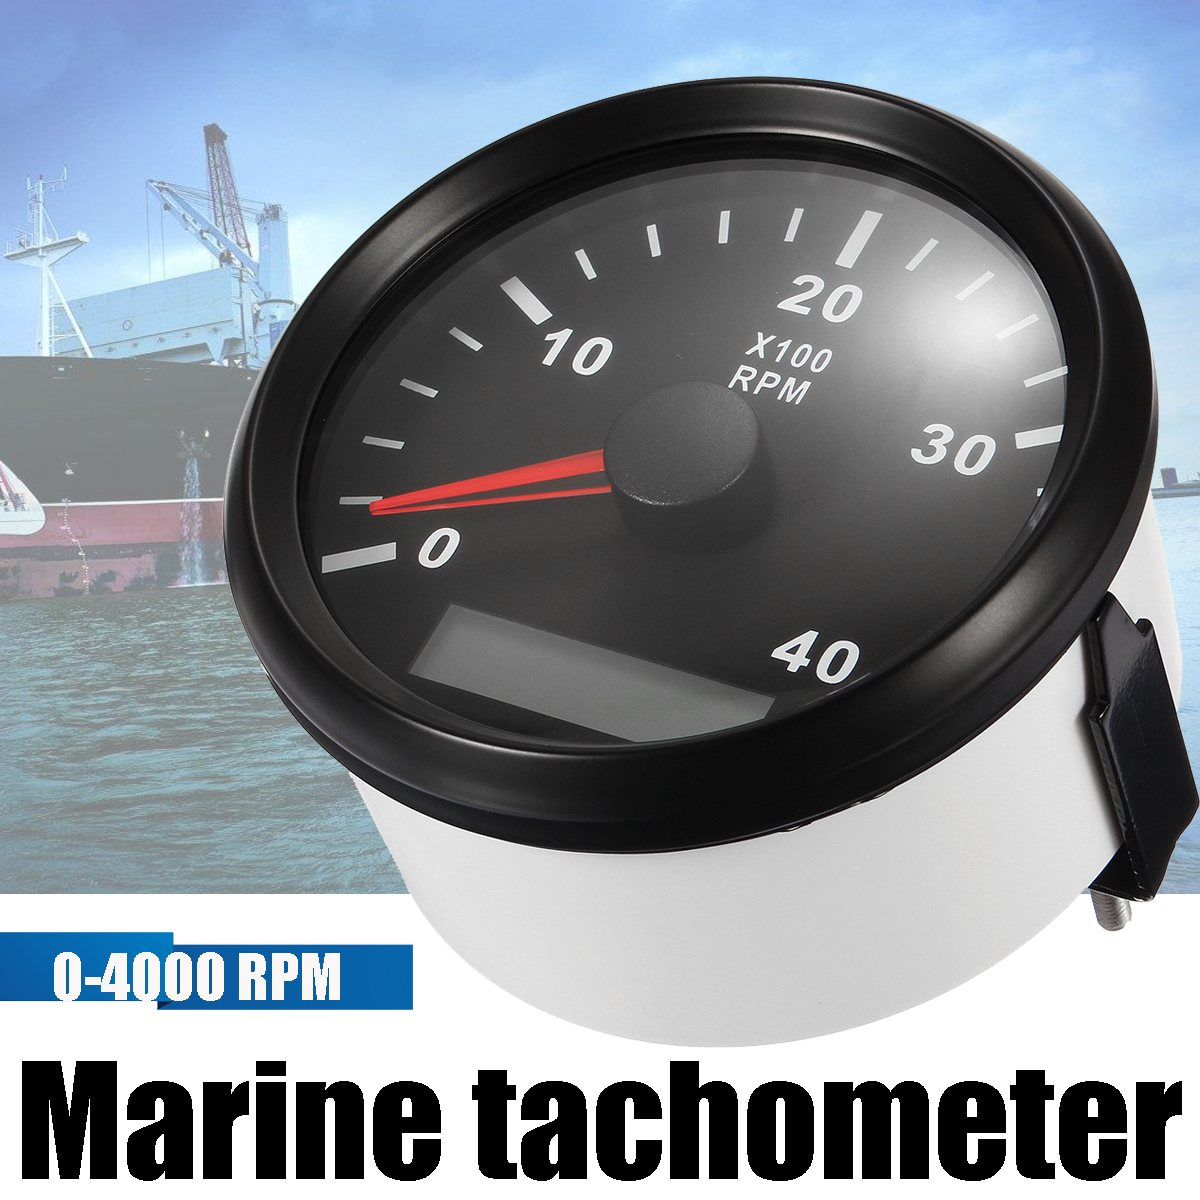 hight resolution of 12 24v 0 4000 boat rpm 85m marine boat tachometer gauge lcd meter tacho hourmeter boat rpm white black with cable